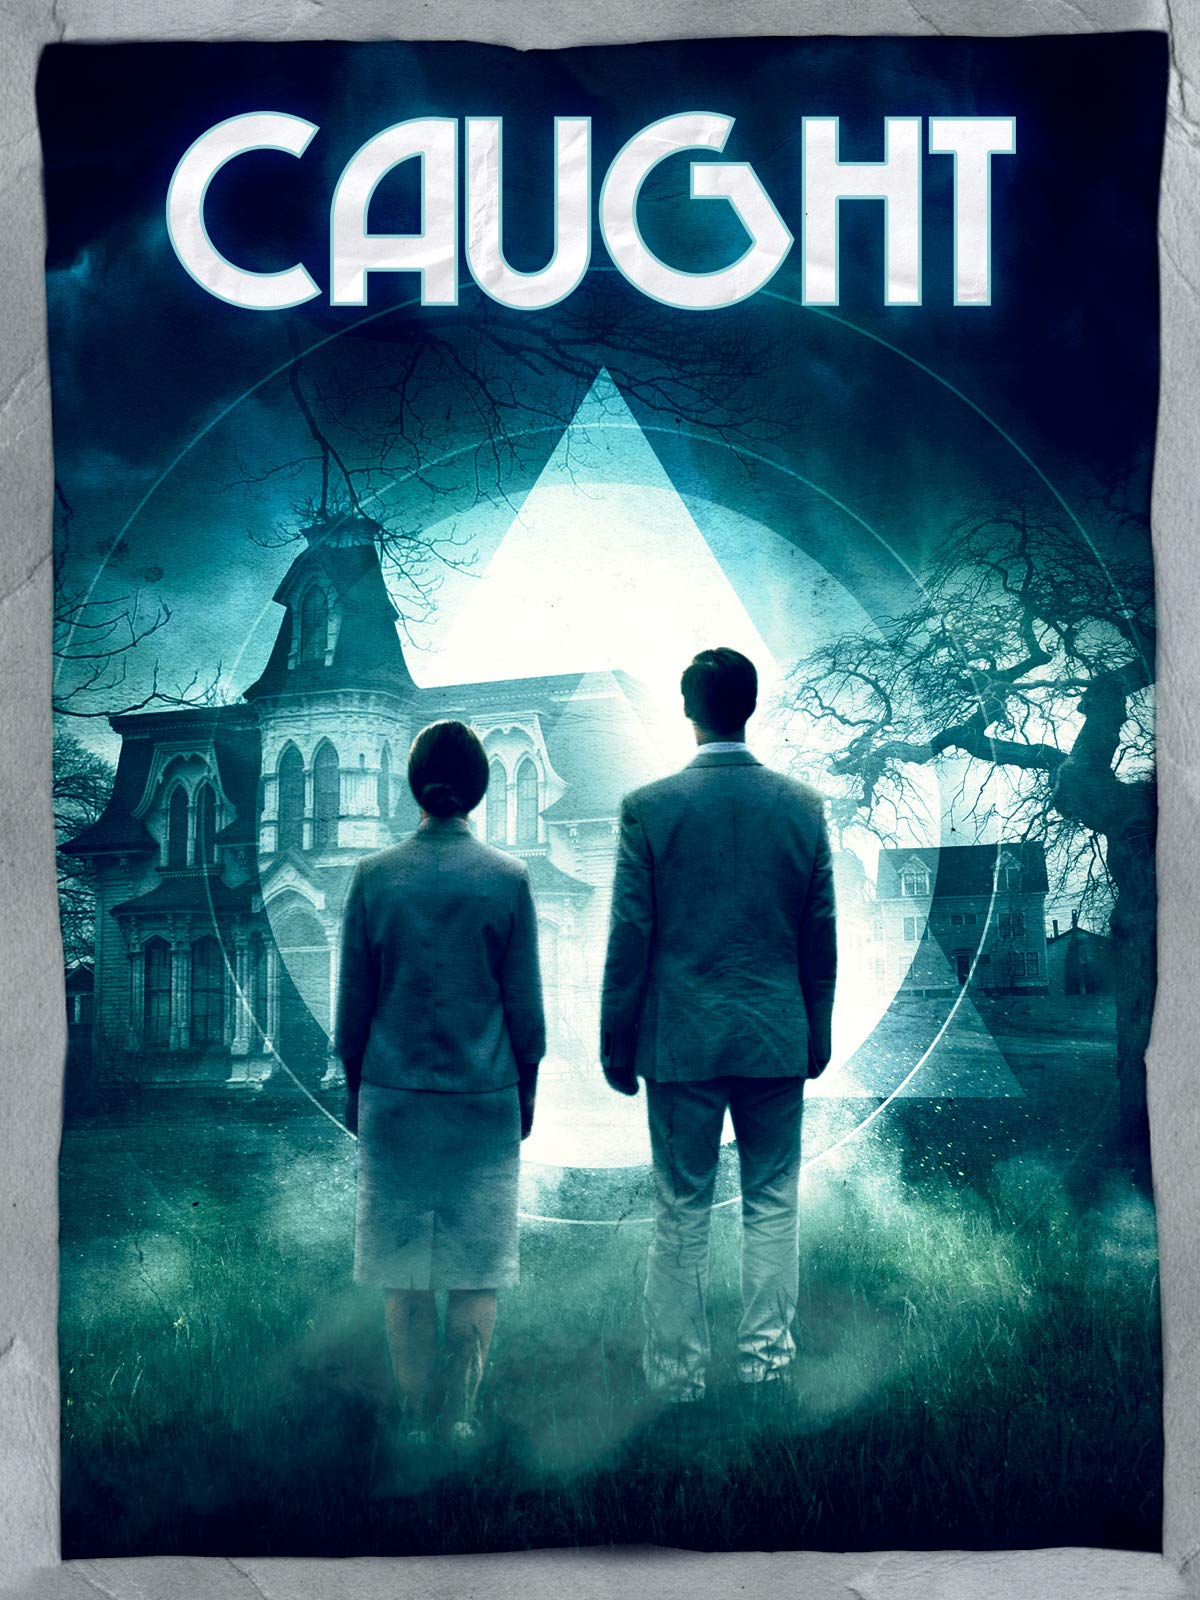 Caught on Amazon Prime Video UK